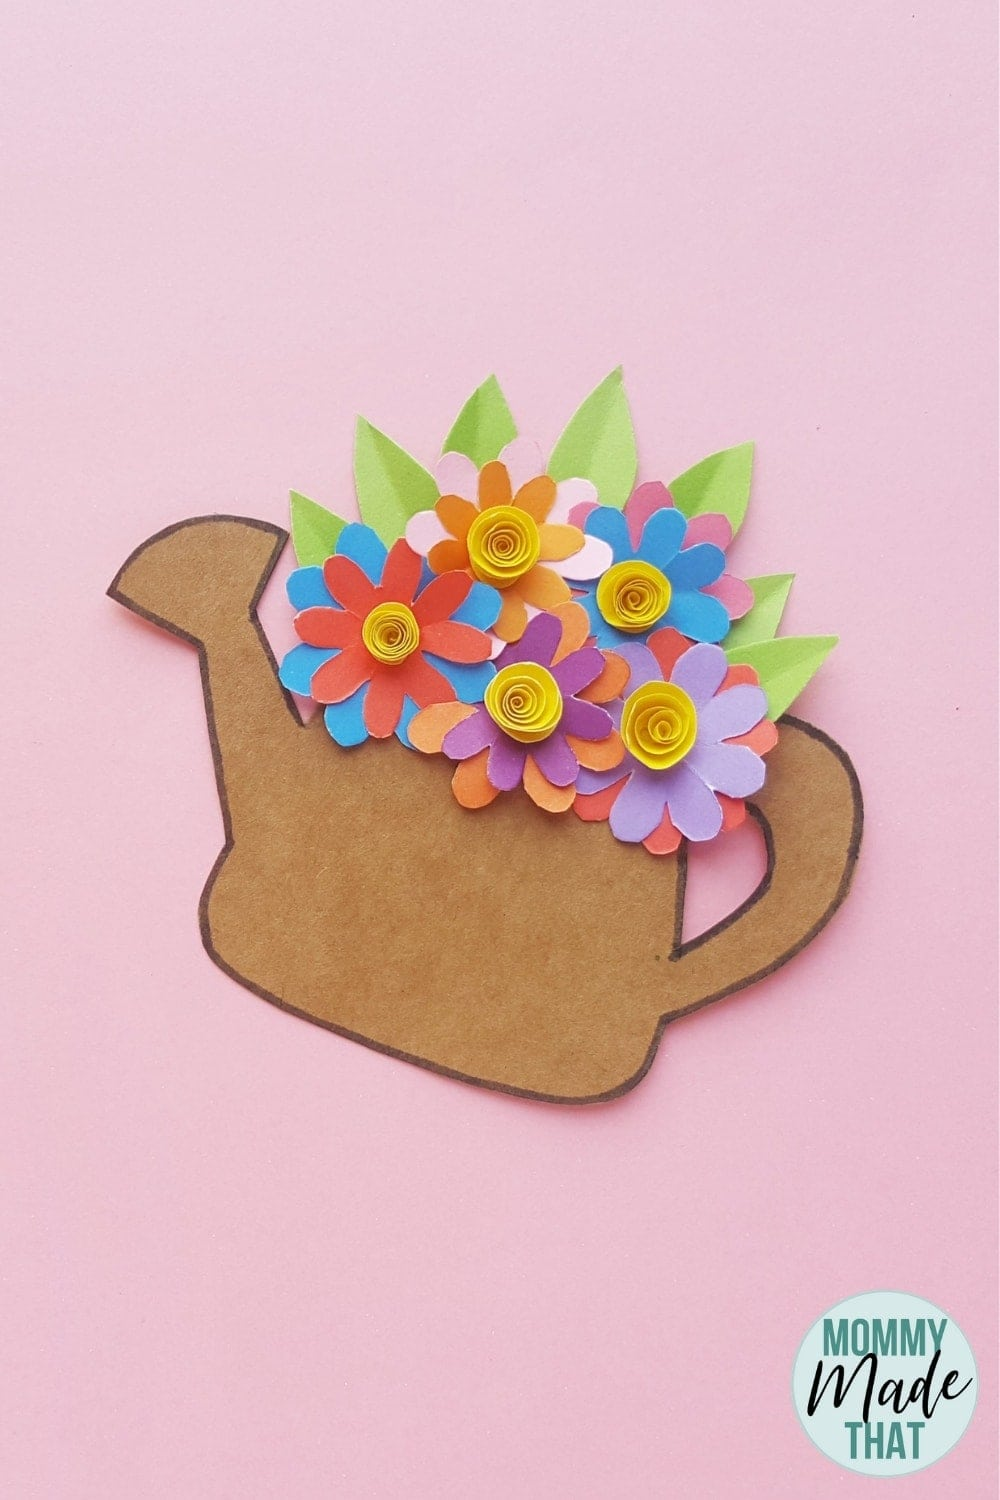 Adorable spring time kids craft. This fun and simple to make paper flower craft looks beautiful when finished. Comes with a free printable paper flower template you can download too!